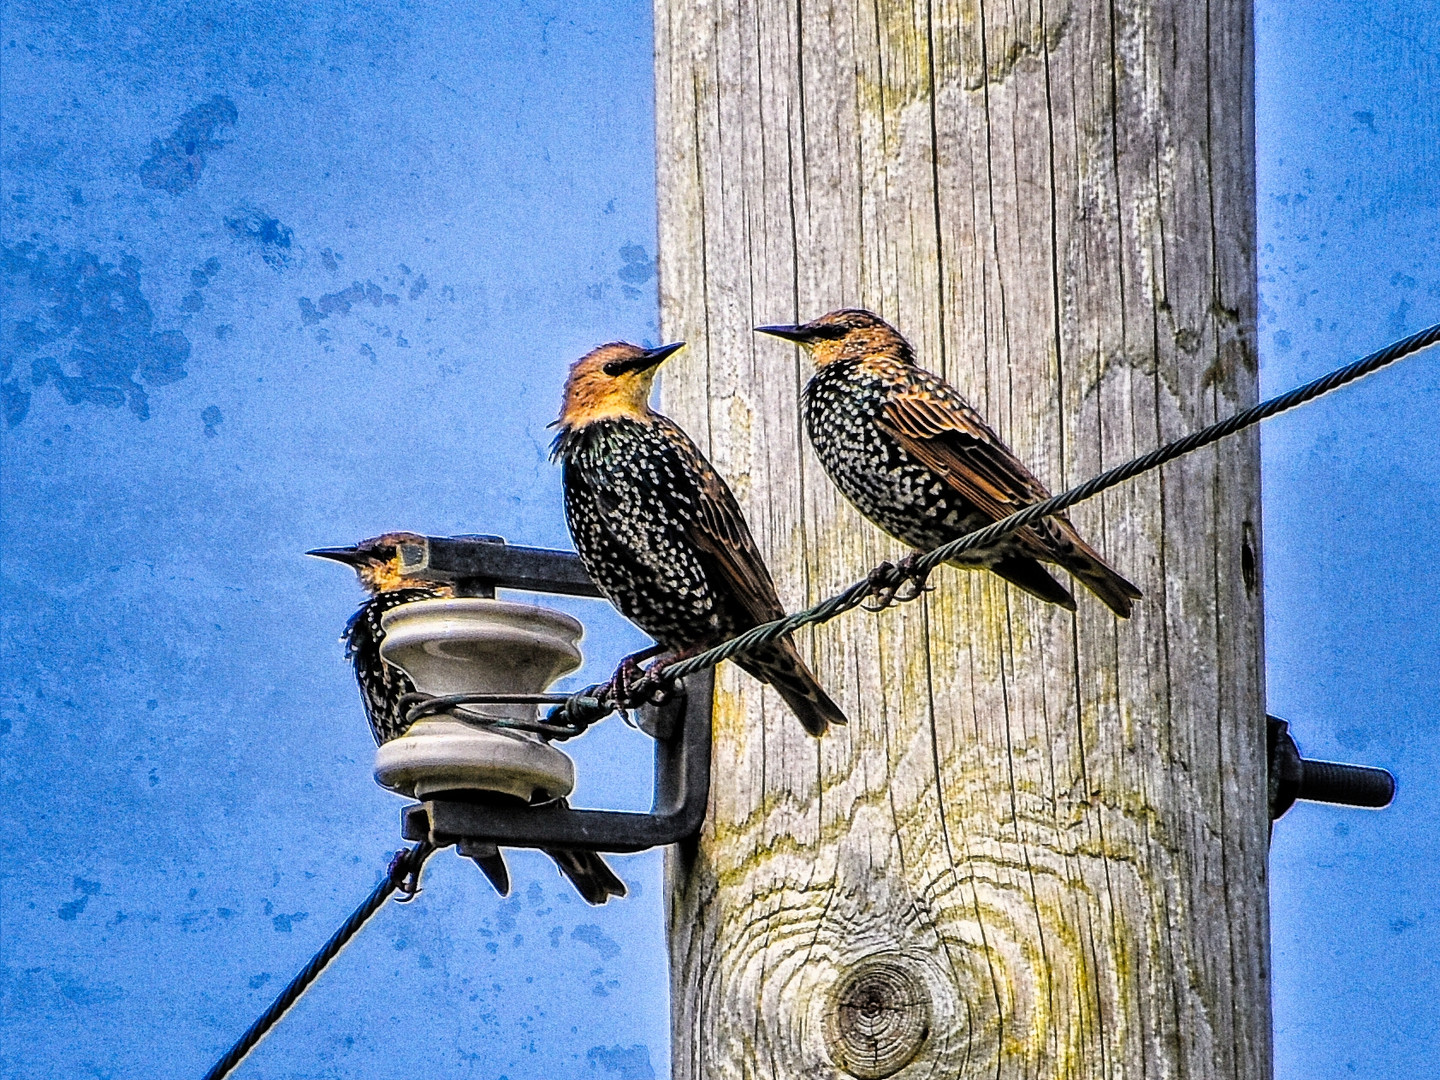 Juvenile Starlings by a Telephone Pole